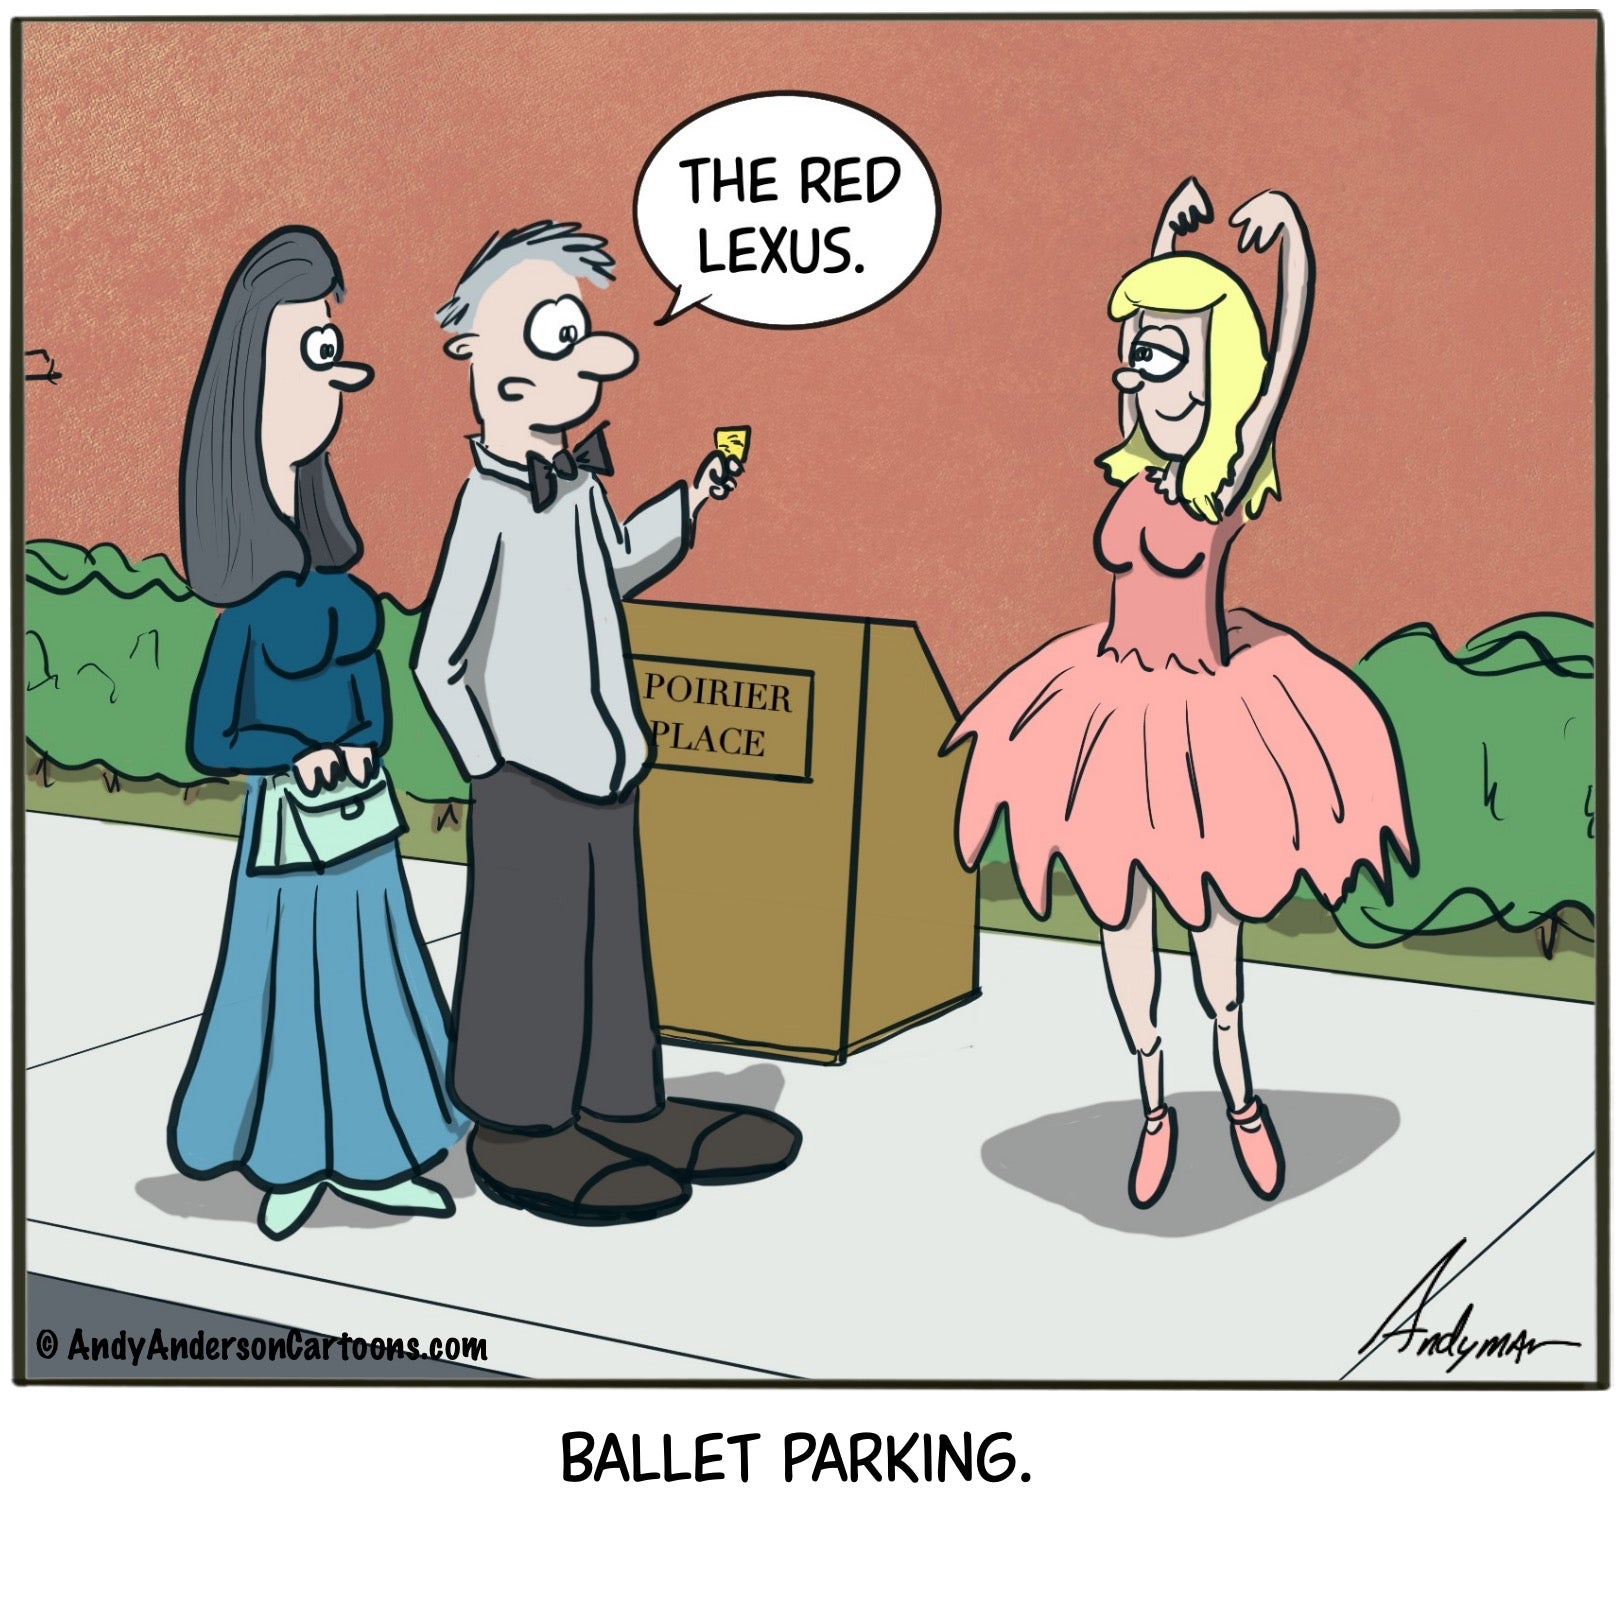 Cartoon about ballet parking instead of valet parking